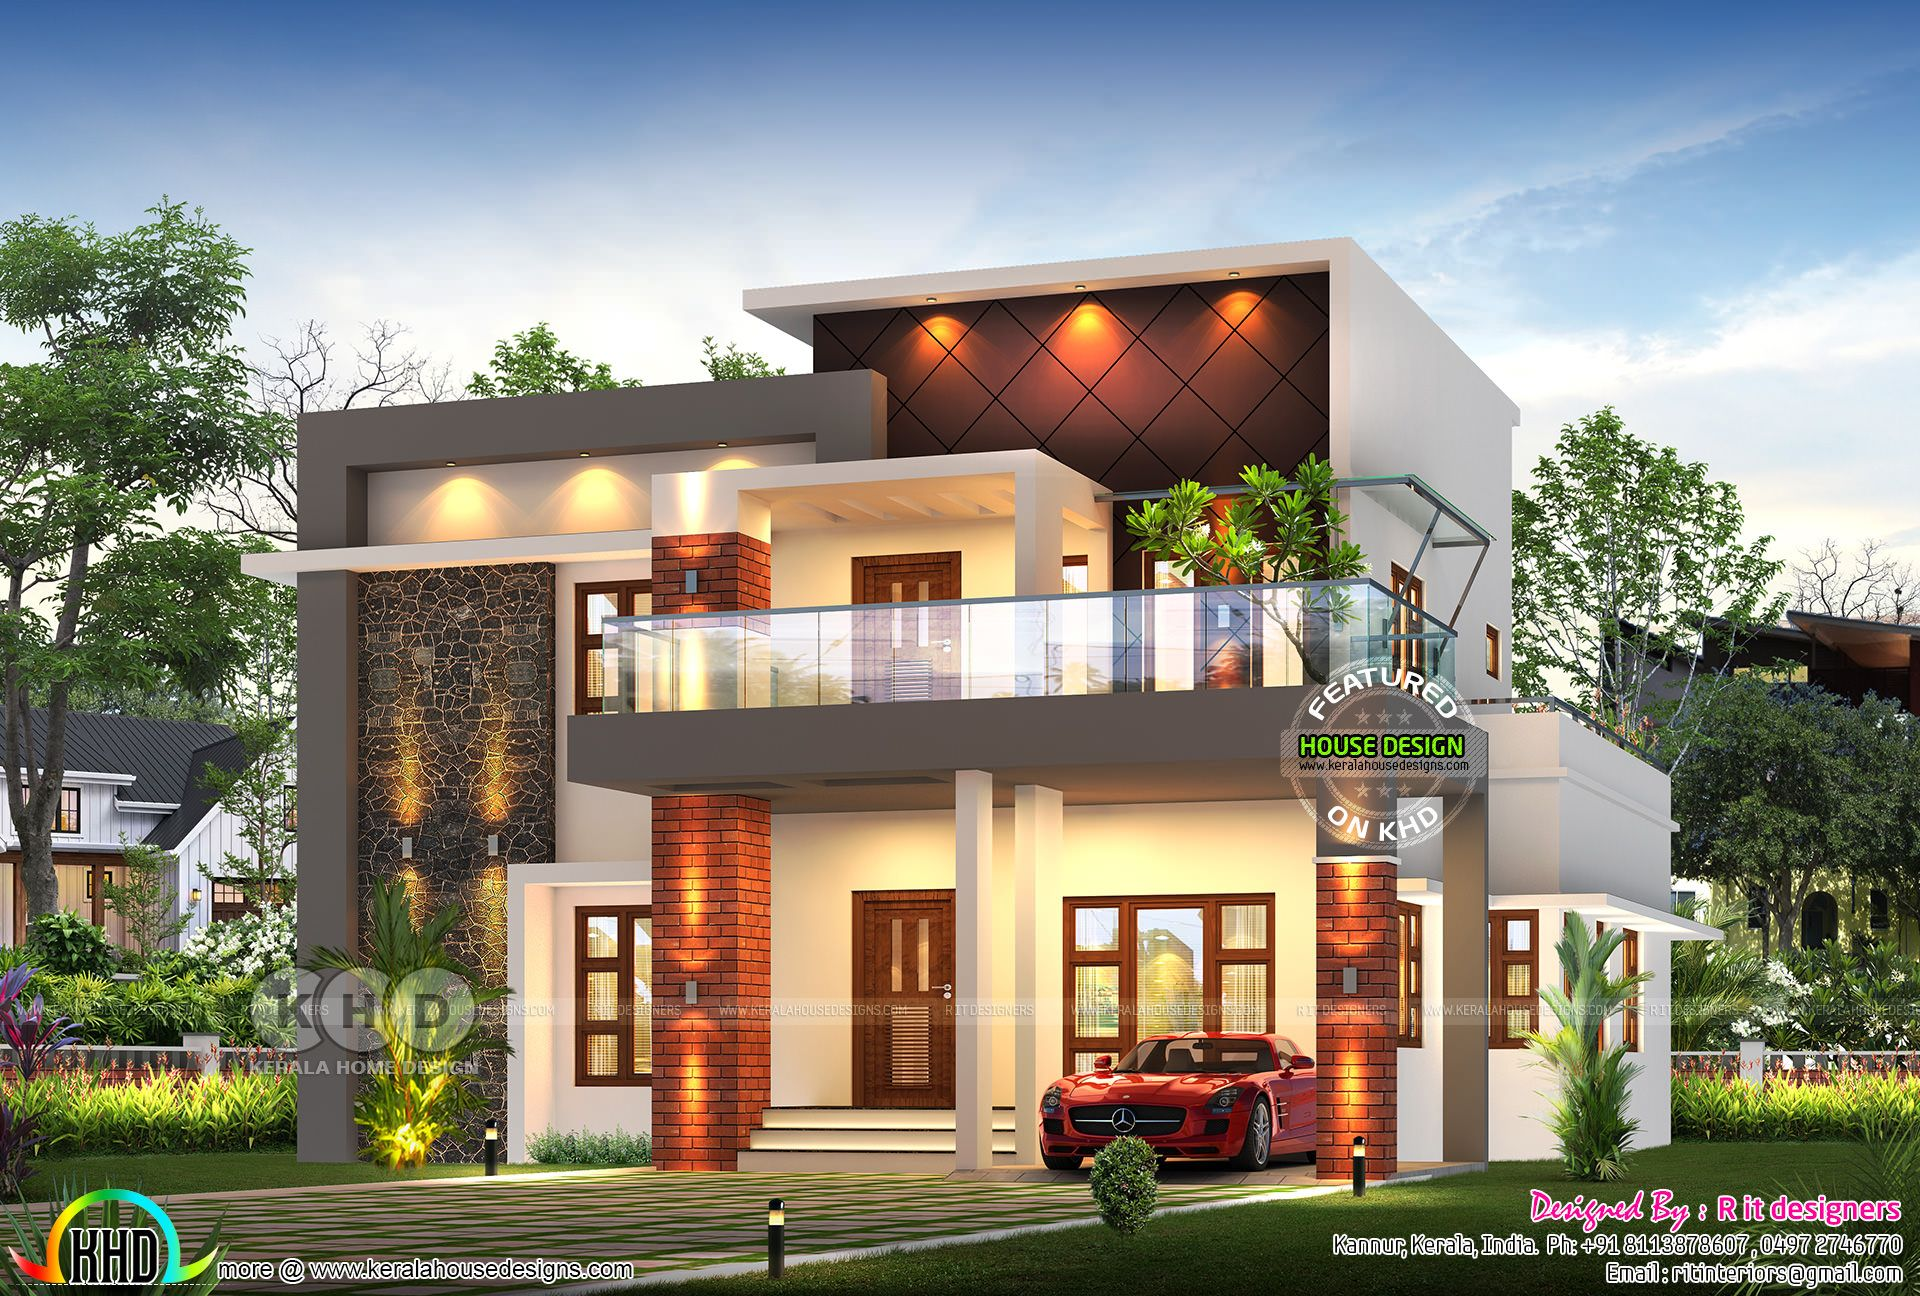 Awesome Rendering Of 4 Bedroom House 2947 Sq Ft Bungalow House Design Kerala House Design Modern Style House Plans